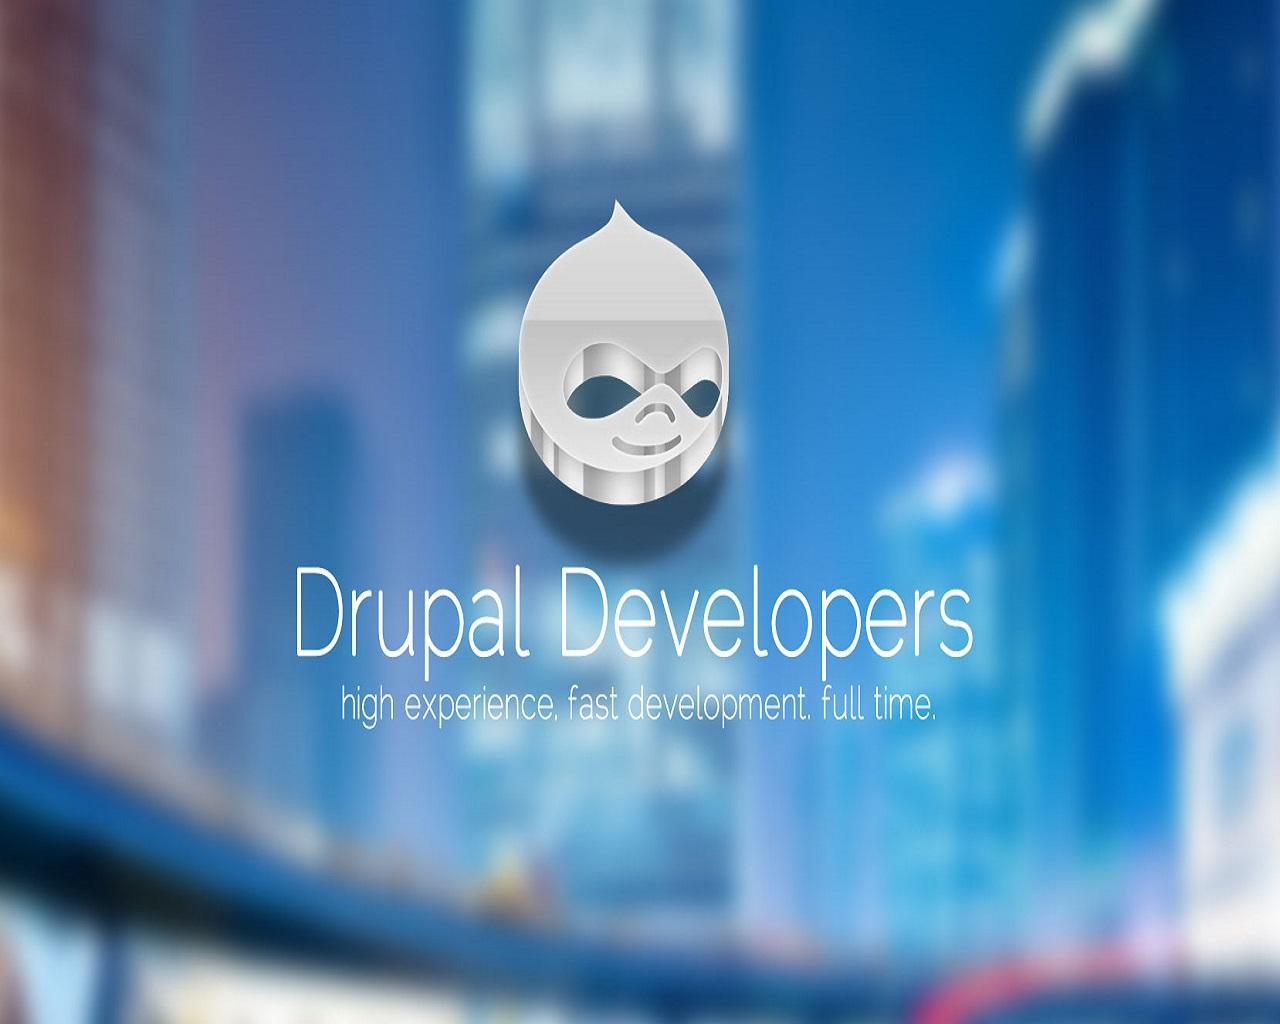 Drupal Site Development Package by Mage_Magician - 79585